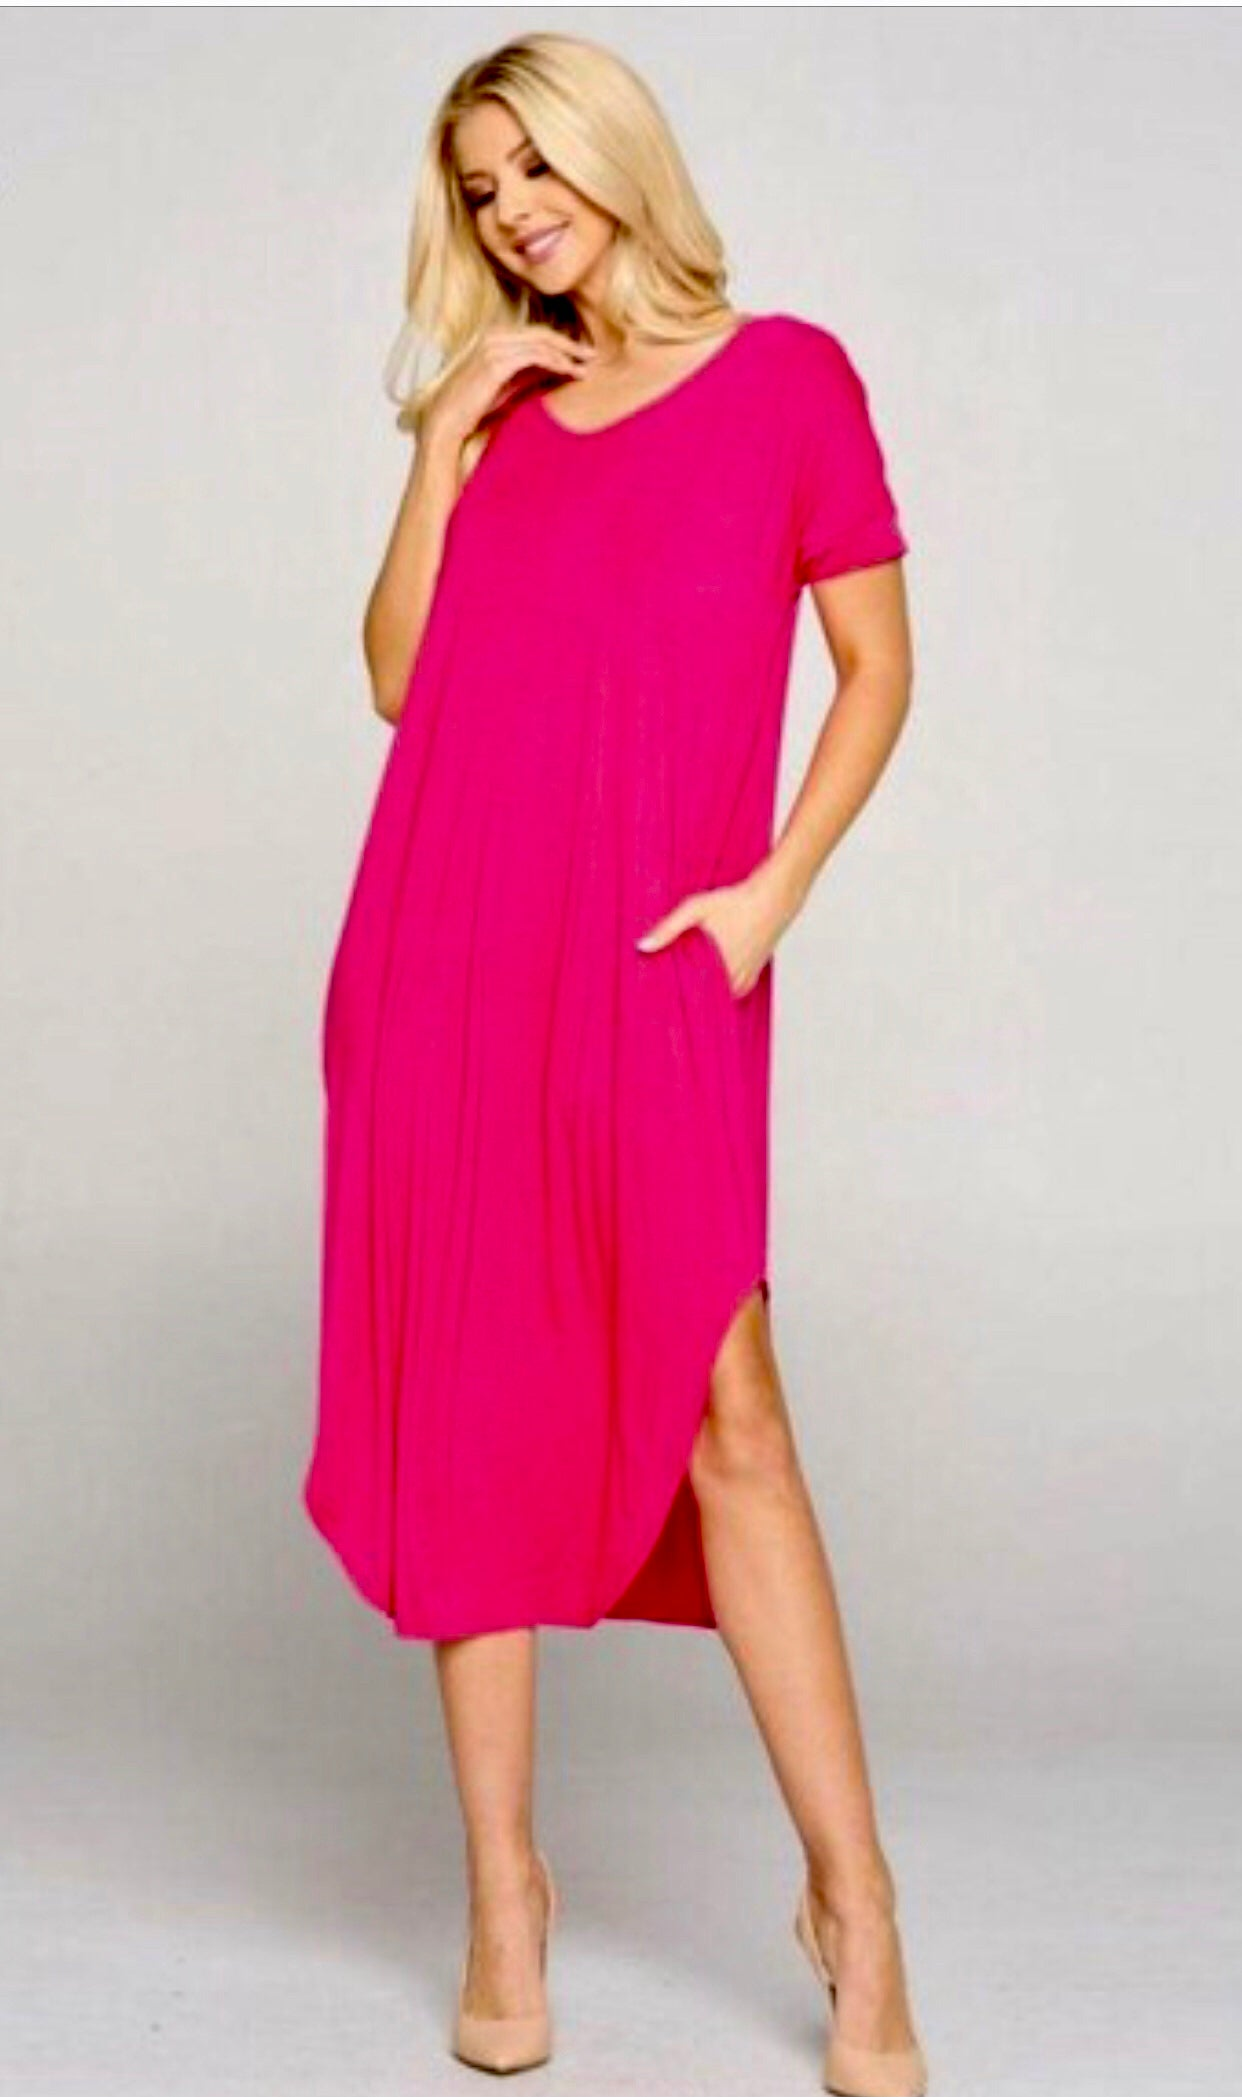 'Longing for You' Fuschia Dress